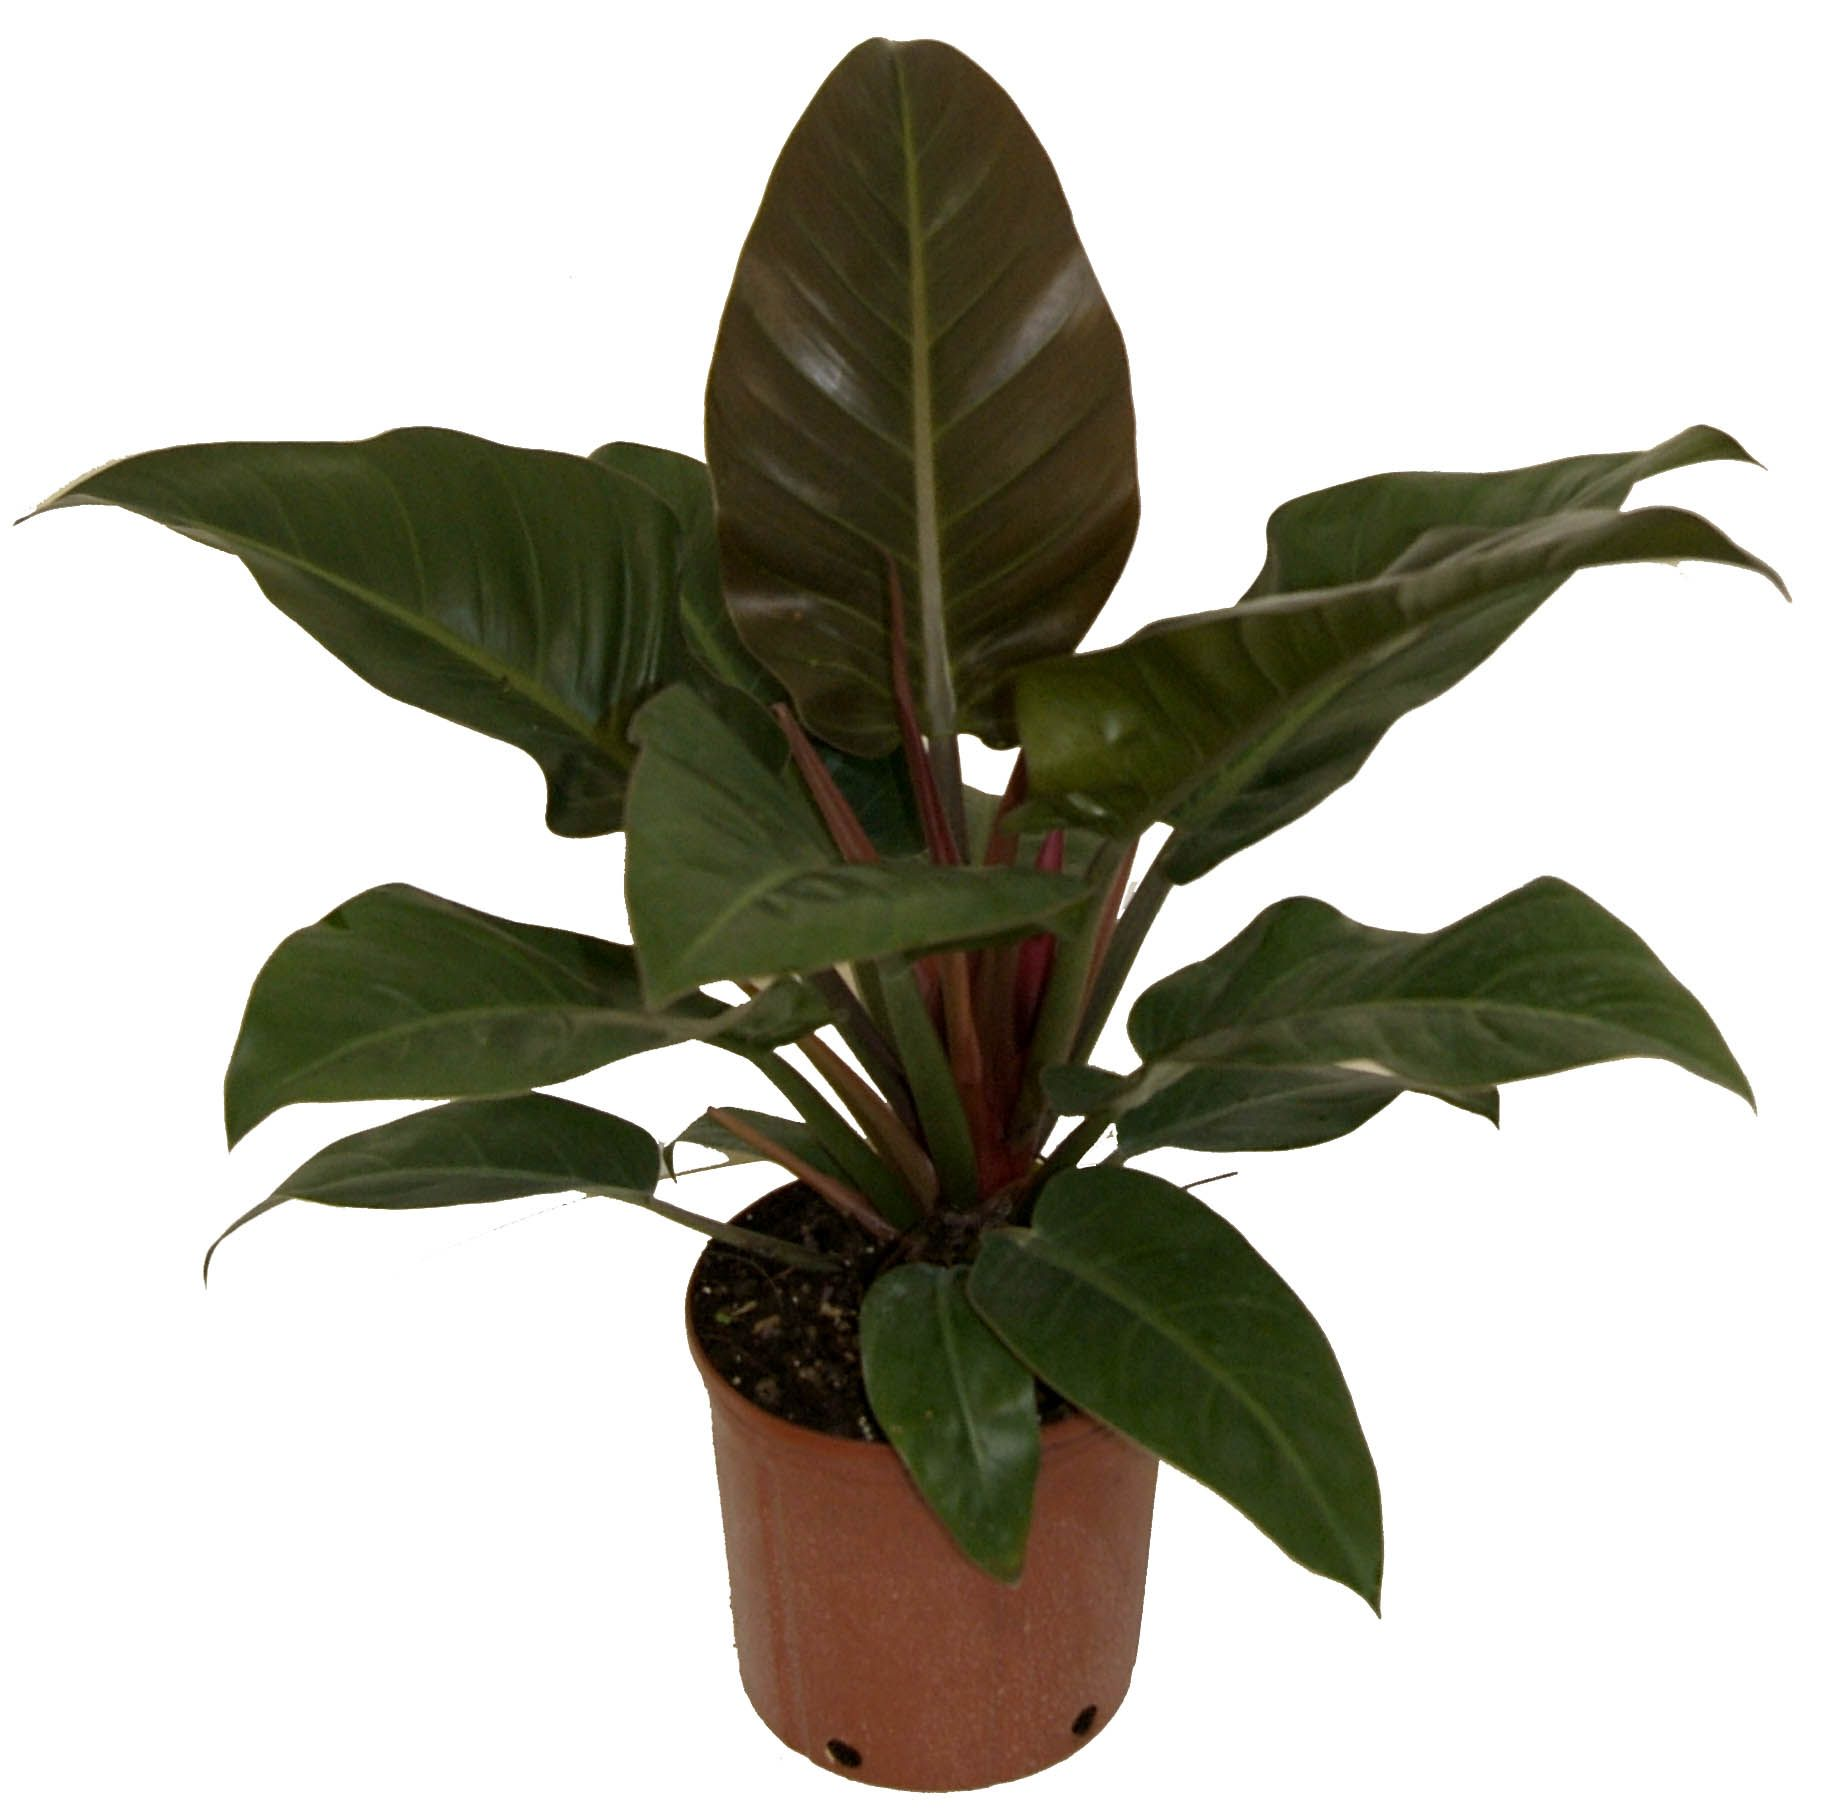 Philodendron scandens oxycardium [Heartleaf Philodendron